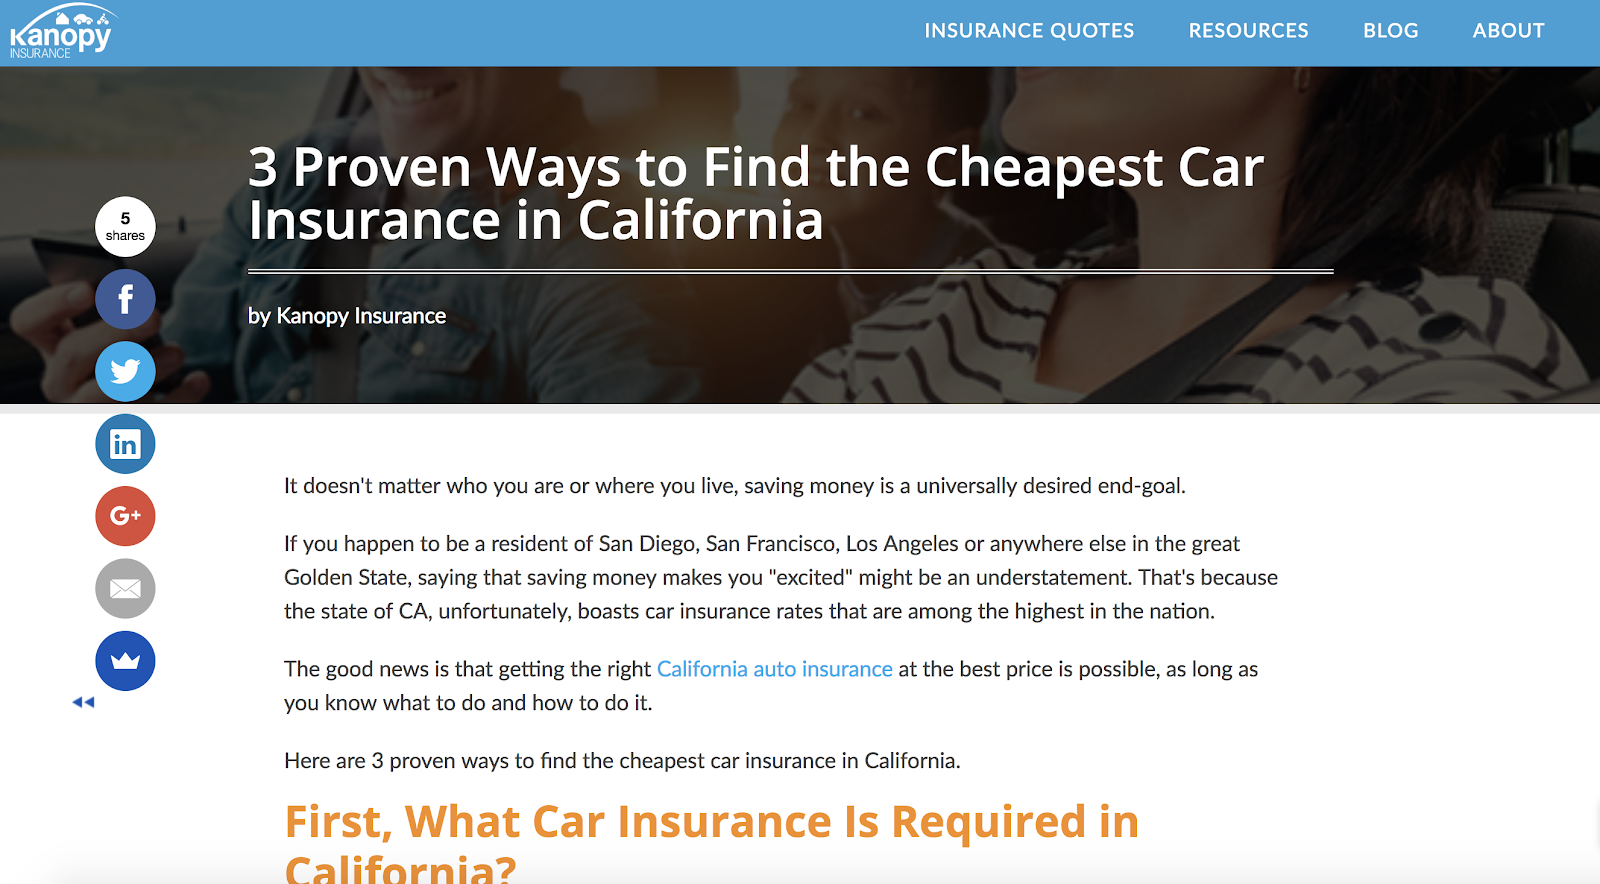 Kanopy Insurance Pricing